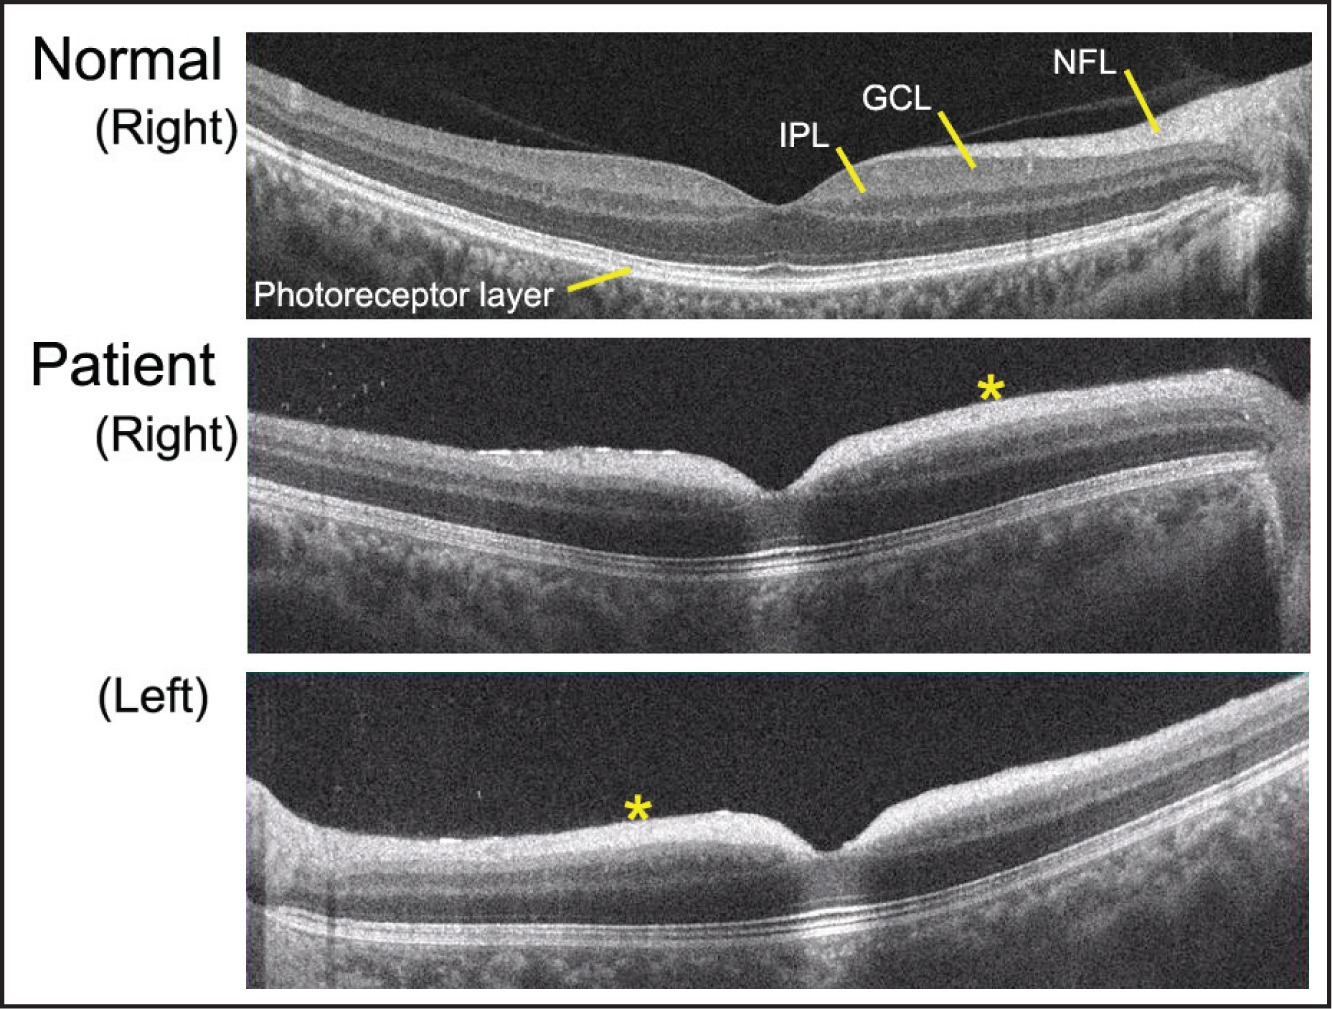 Optical coherence tomography (OCT) of a normal subject and a patient with galactosialidosis. The retinal ganglion cell layer (GCL) appears hyperreflective in the macula, and the boundary between the nerve fiber layer (NFL) and the GCL is unclear (asterisk). IPL = inner plexiform layer.